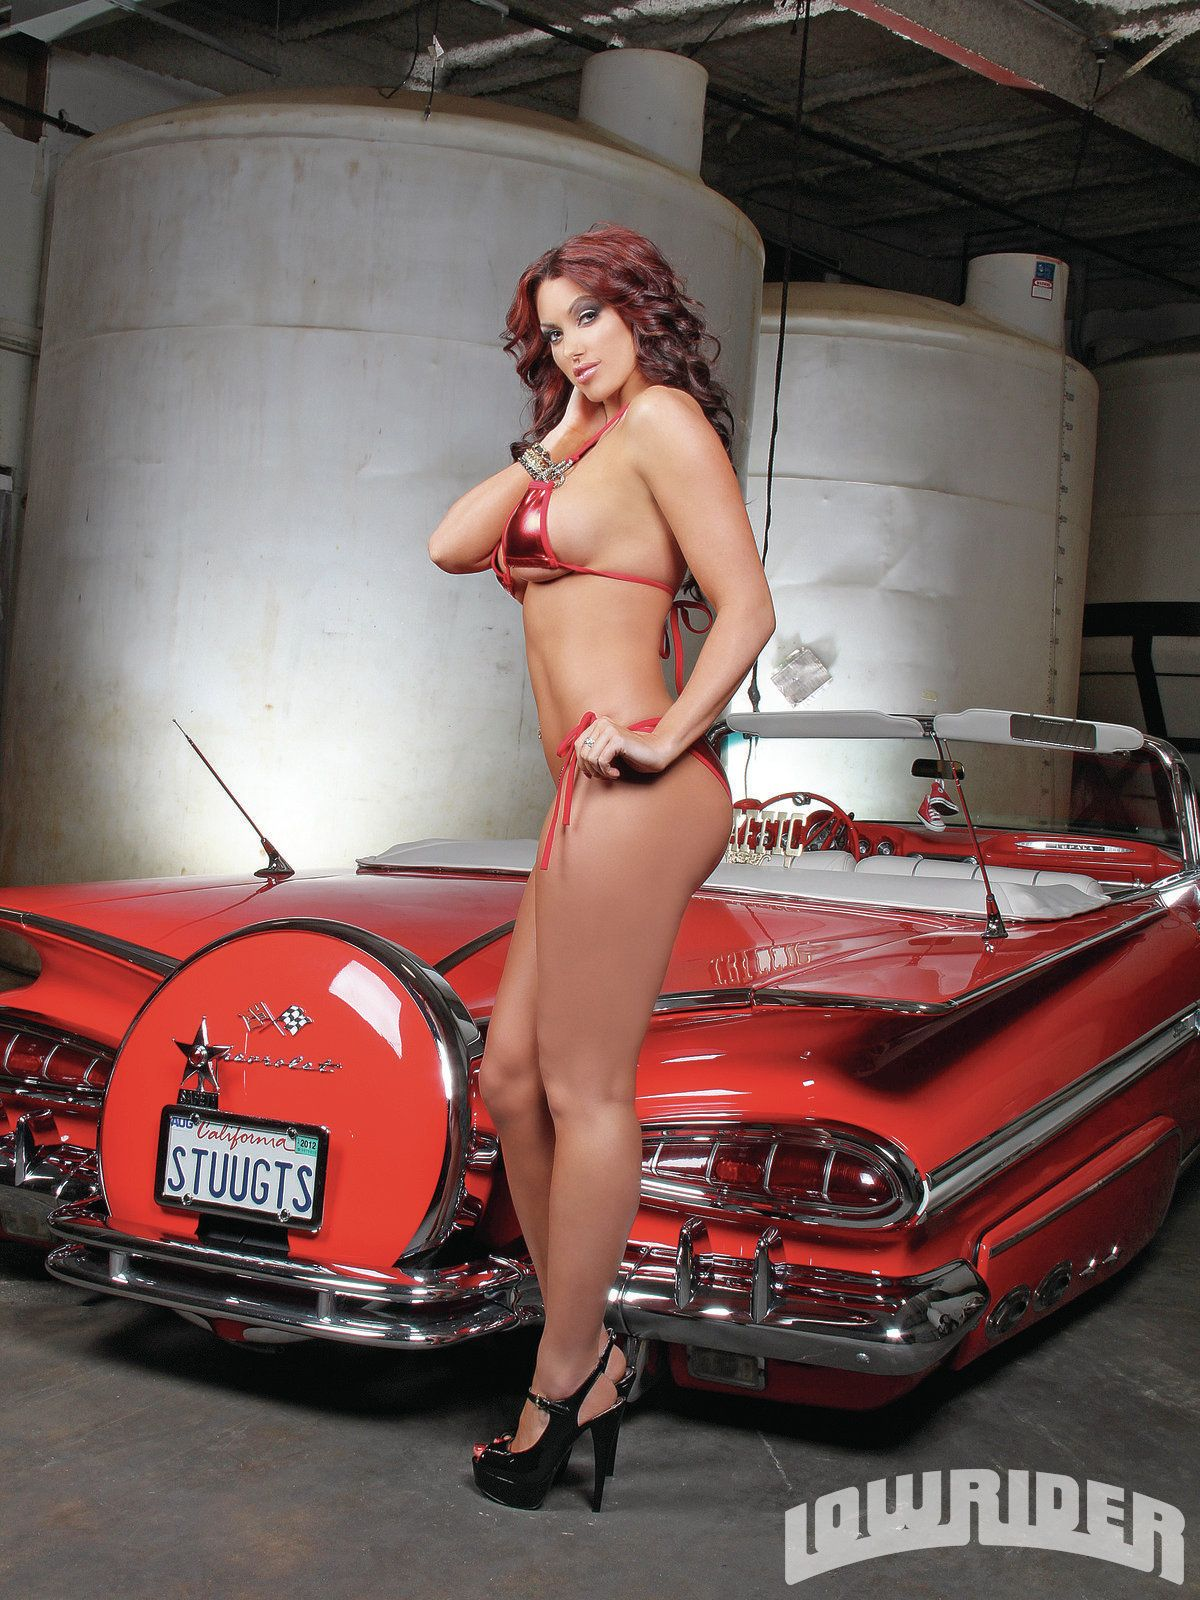 stunning lowrider girl angela breitenbach and red 1959 chevrolet impala convertible sexy. Black Bedroom Furniture Sets. Home Design Ideas